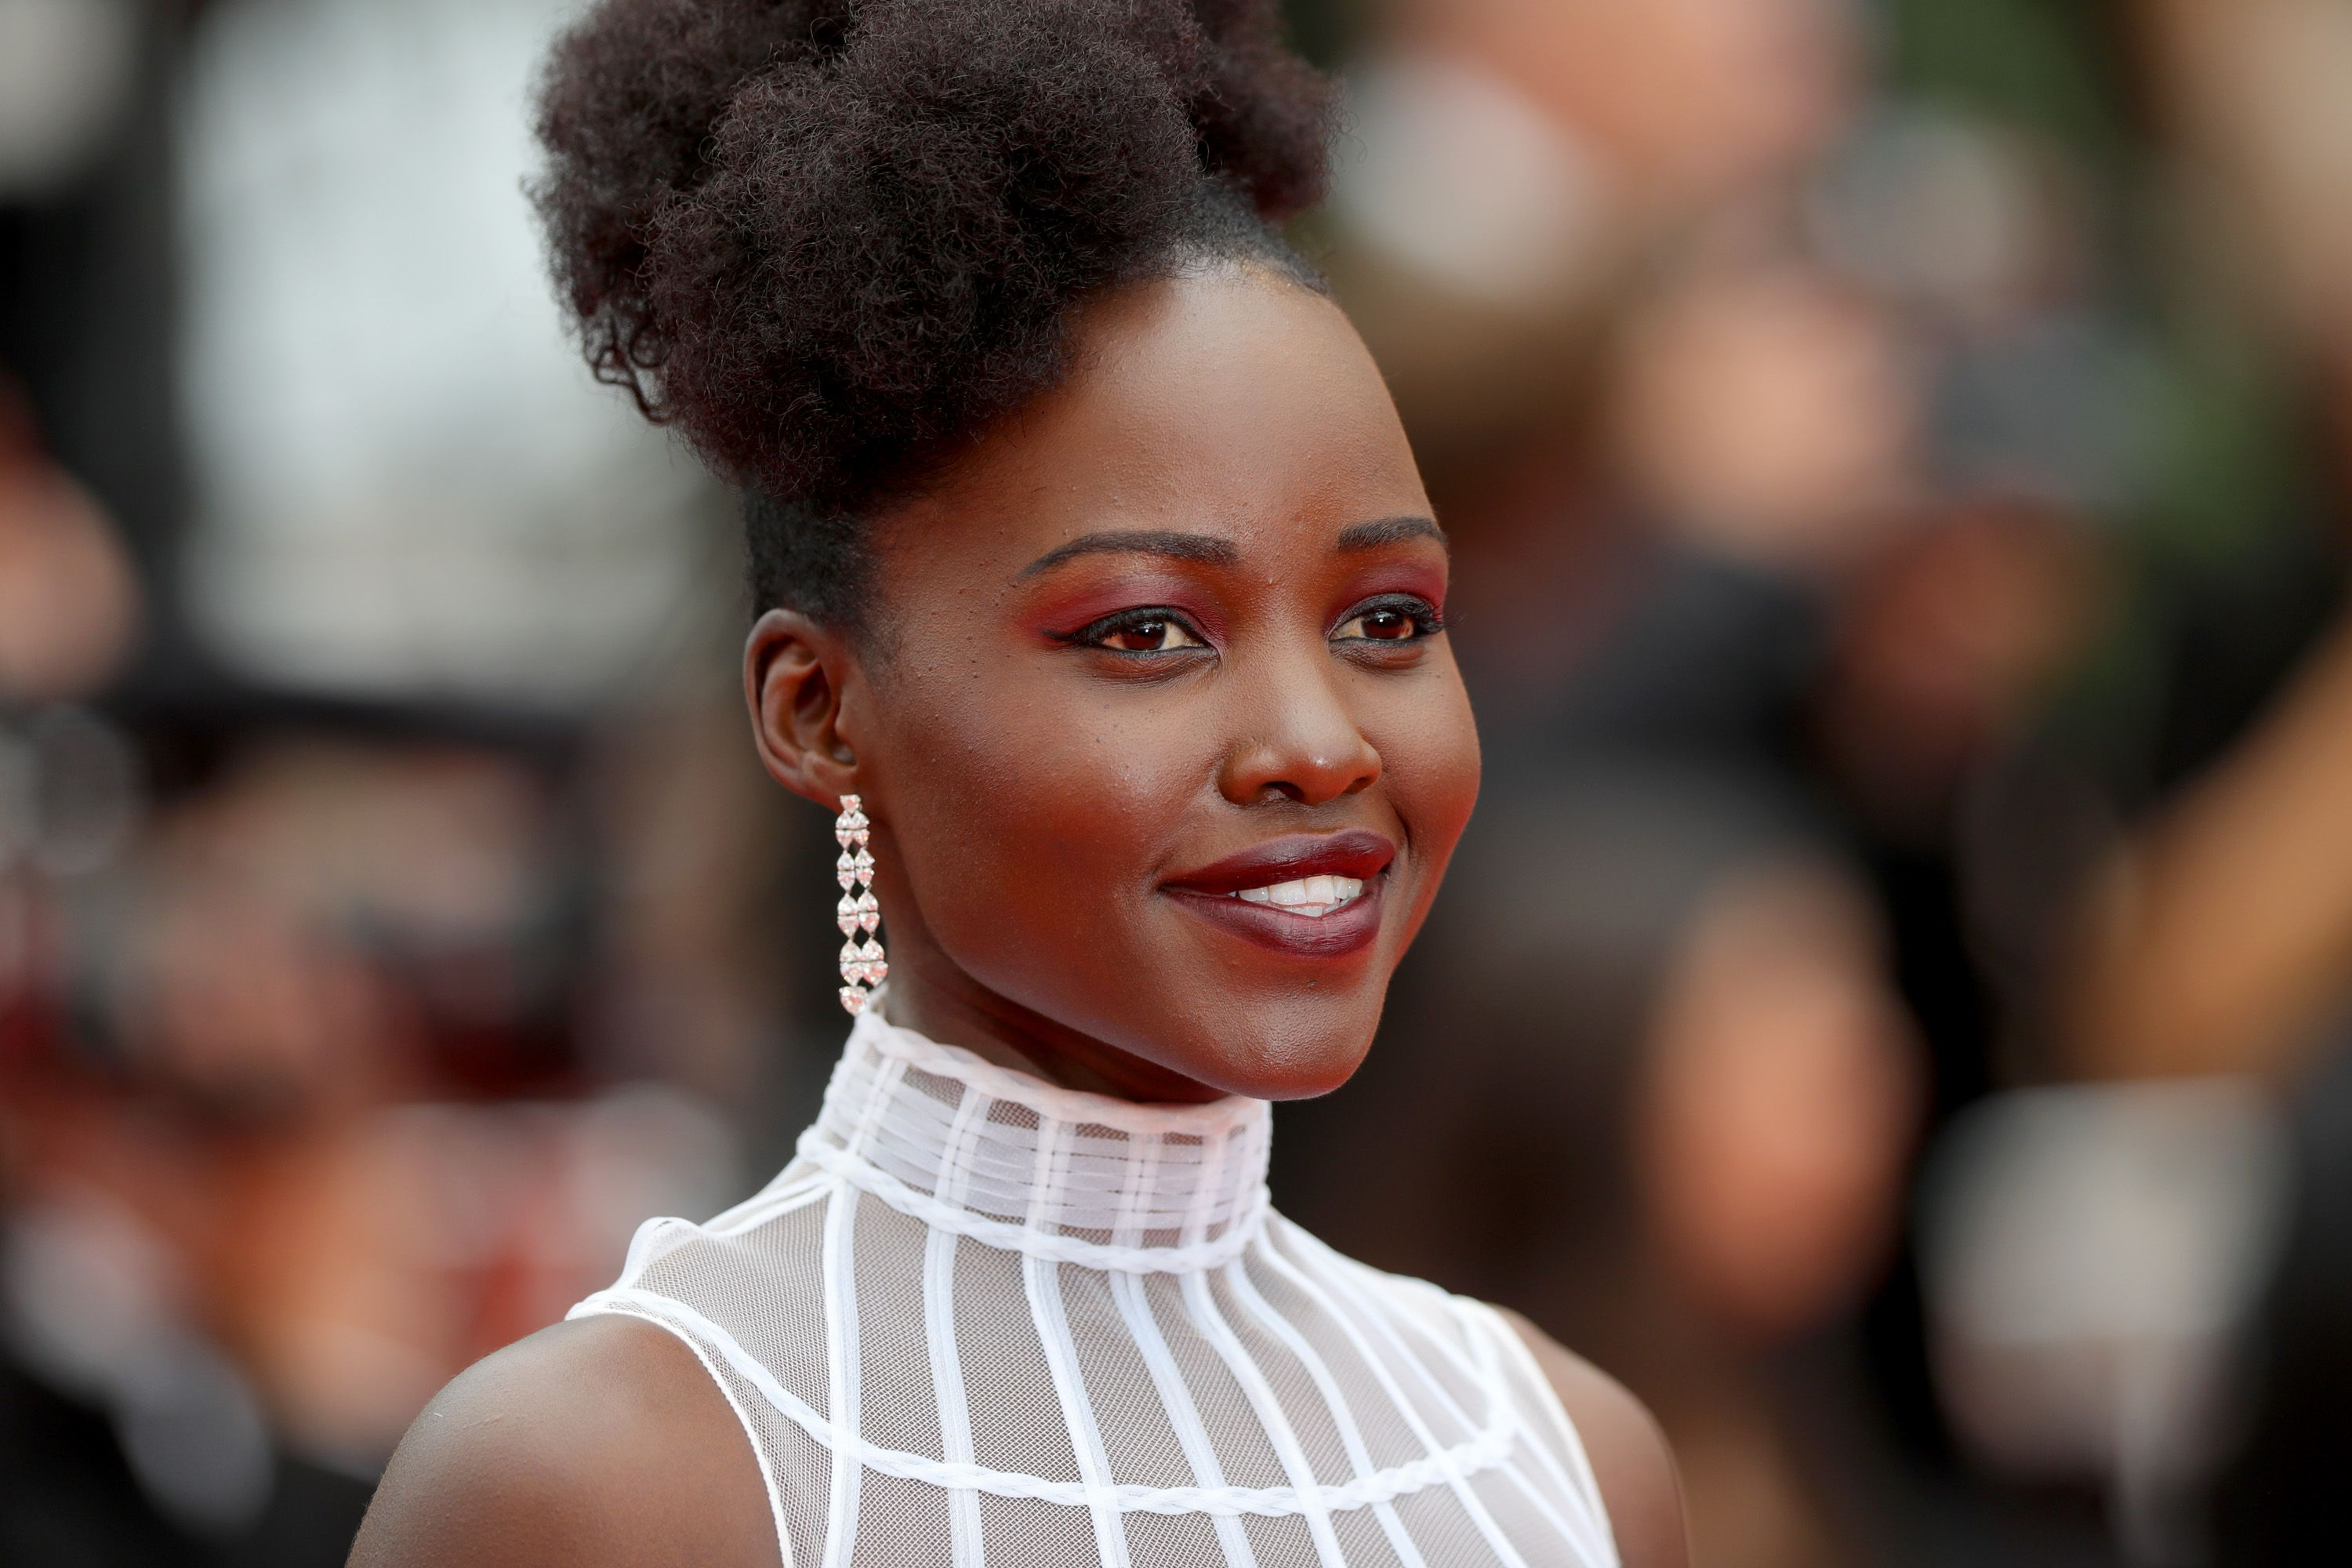 Everything We Know About Americanah, the HBO Max Series Starring Lupita Nyong'o